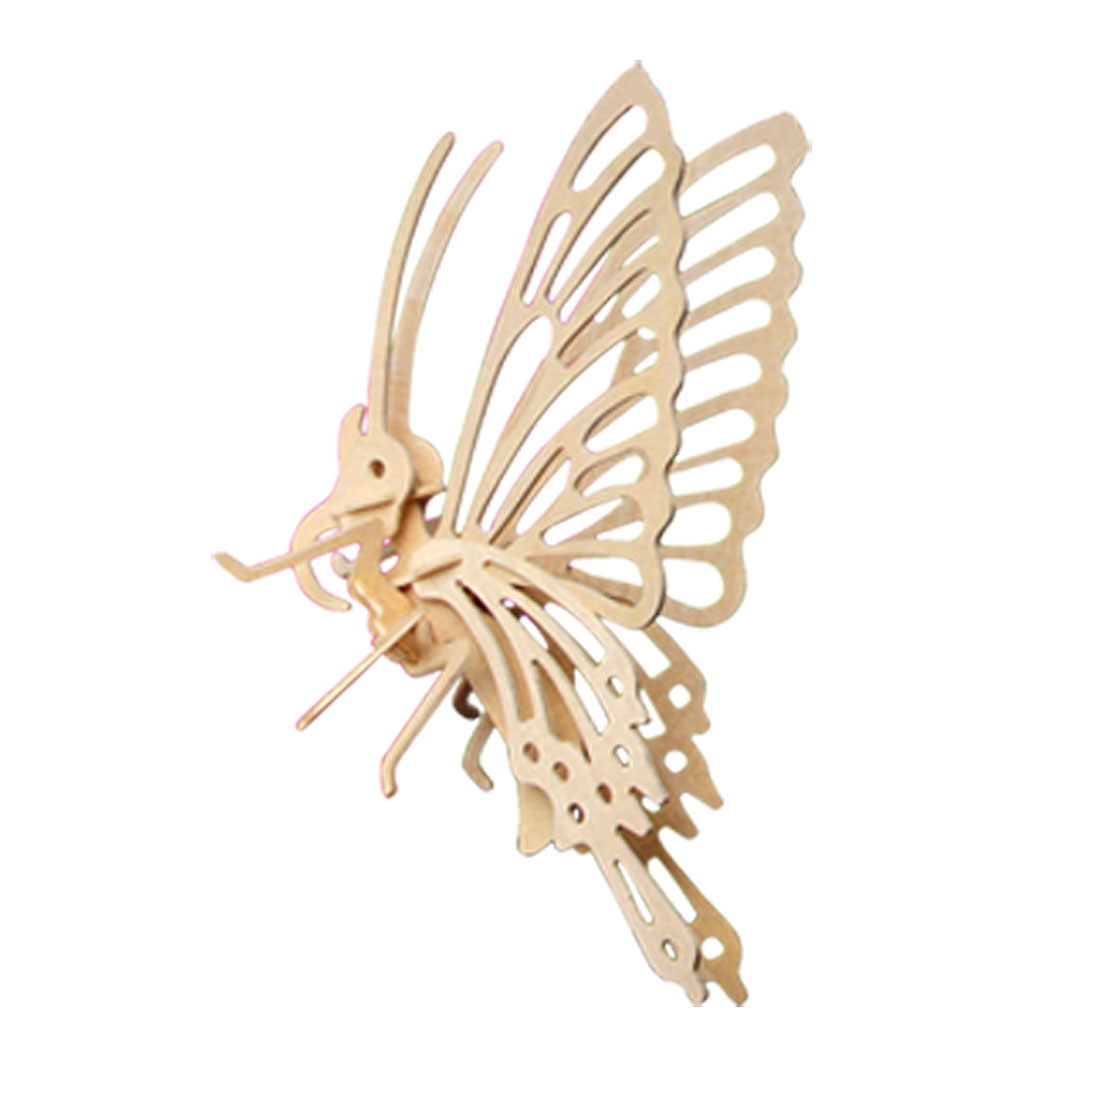 Wooden 3D Flying Butterfly Model Assemble DIY Puzzle Toy